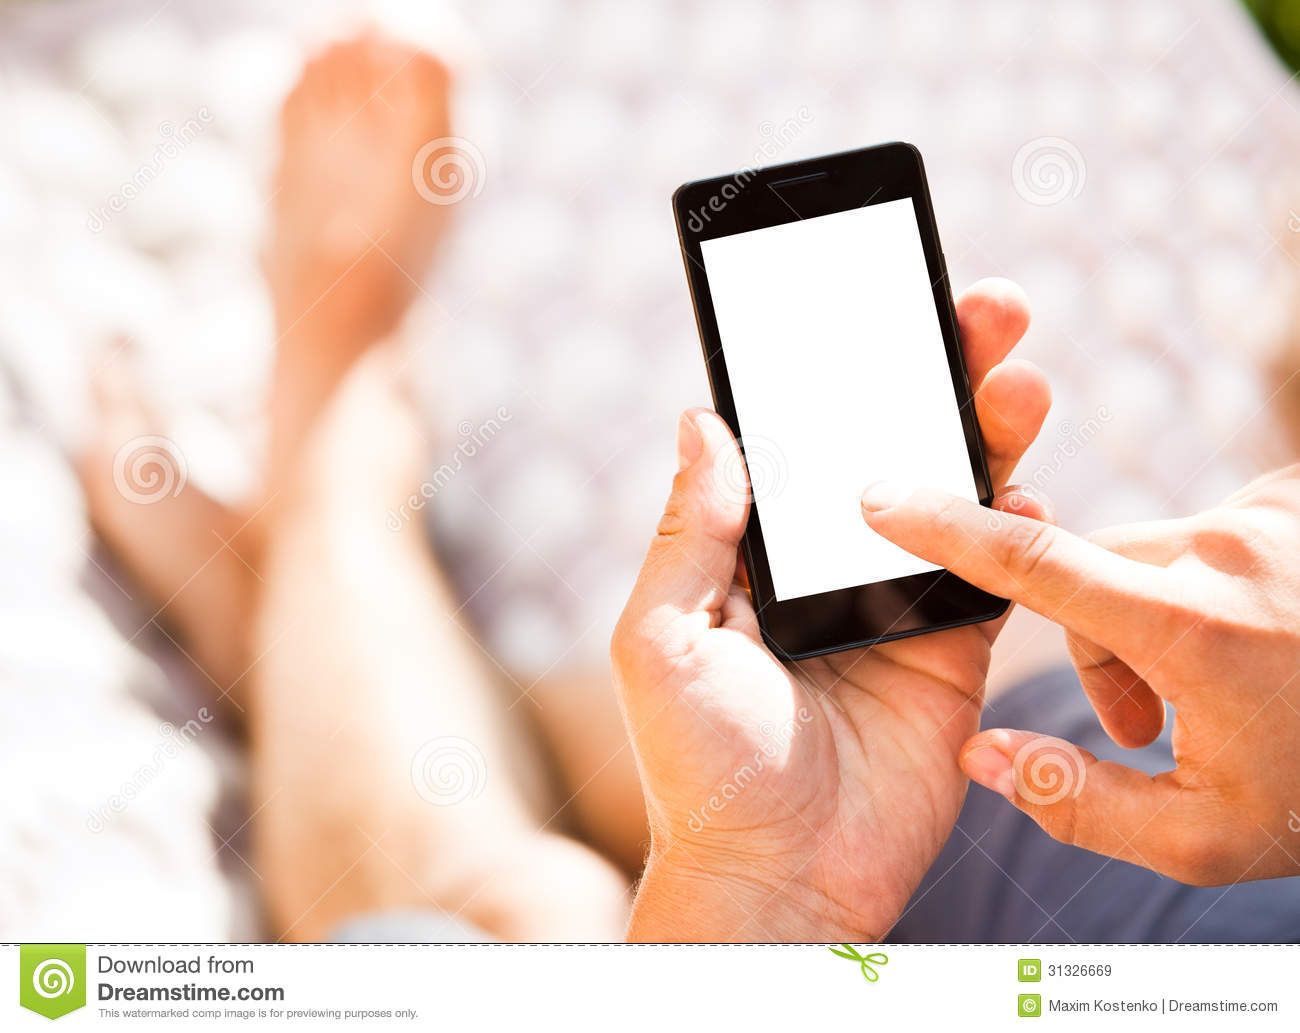 use of mobile phones has lowered